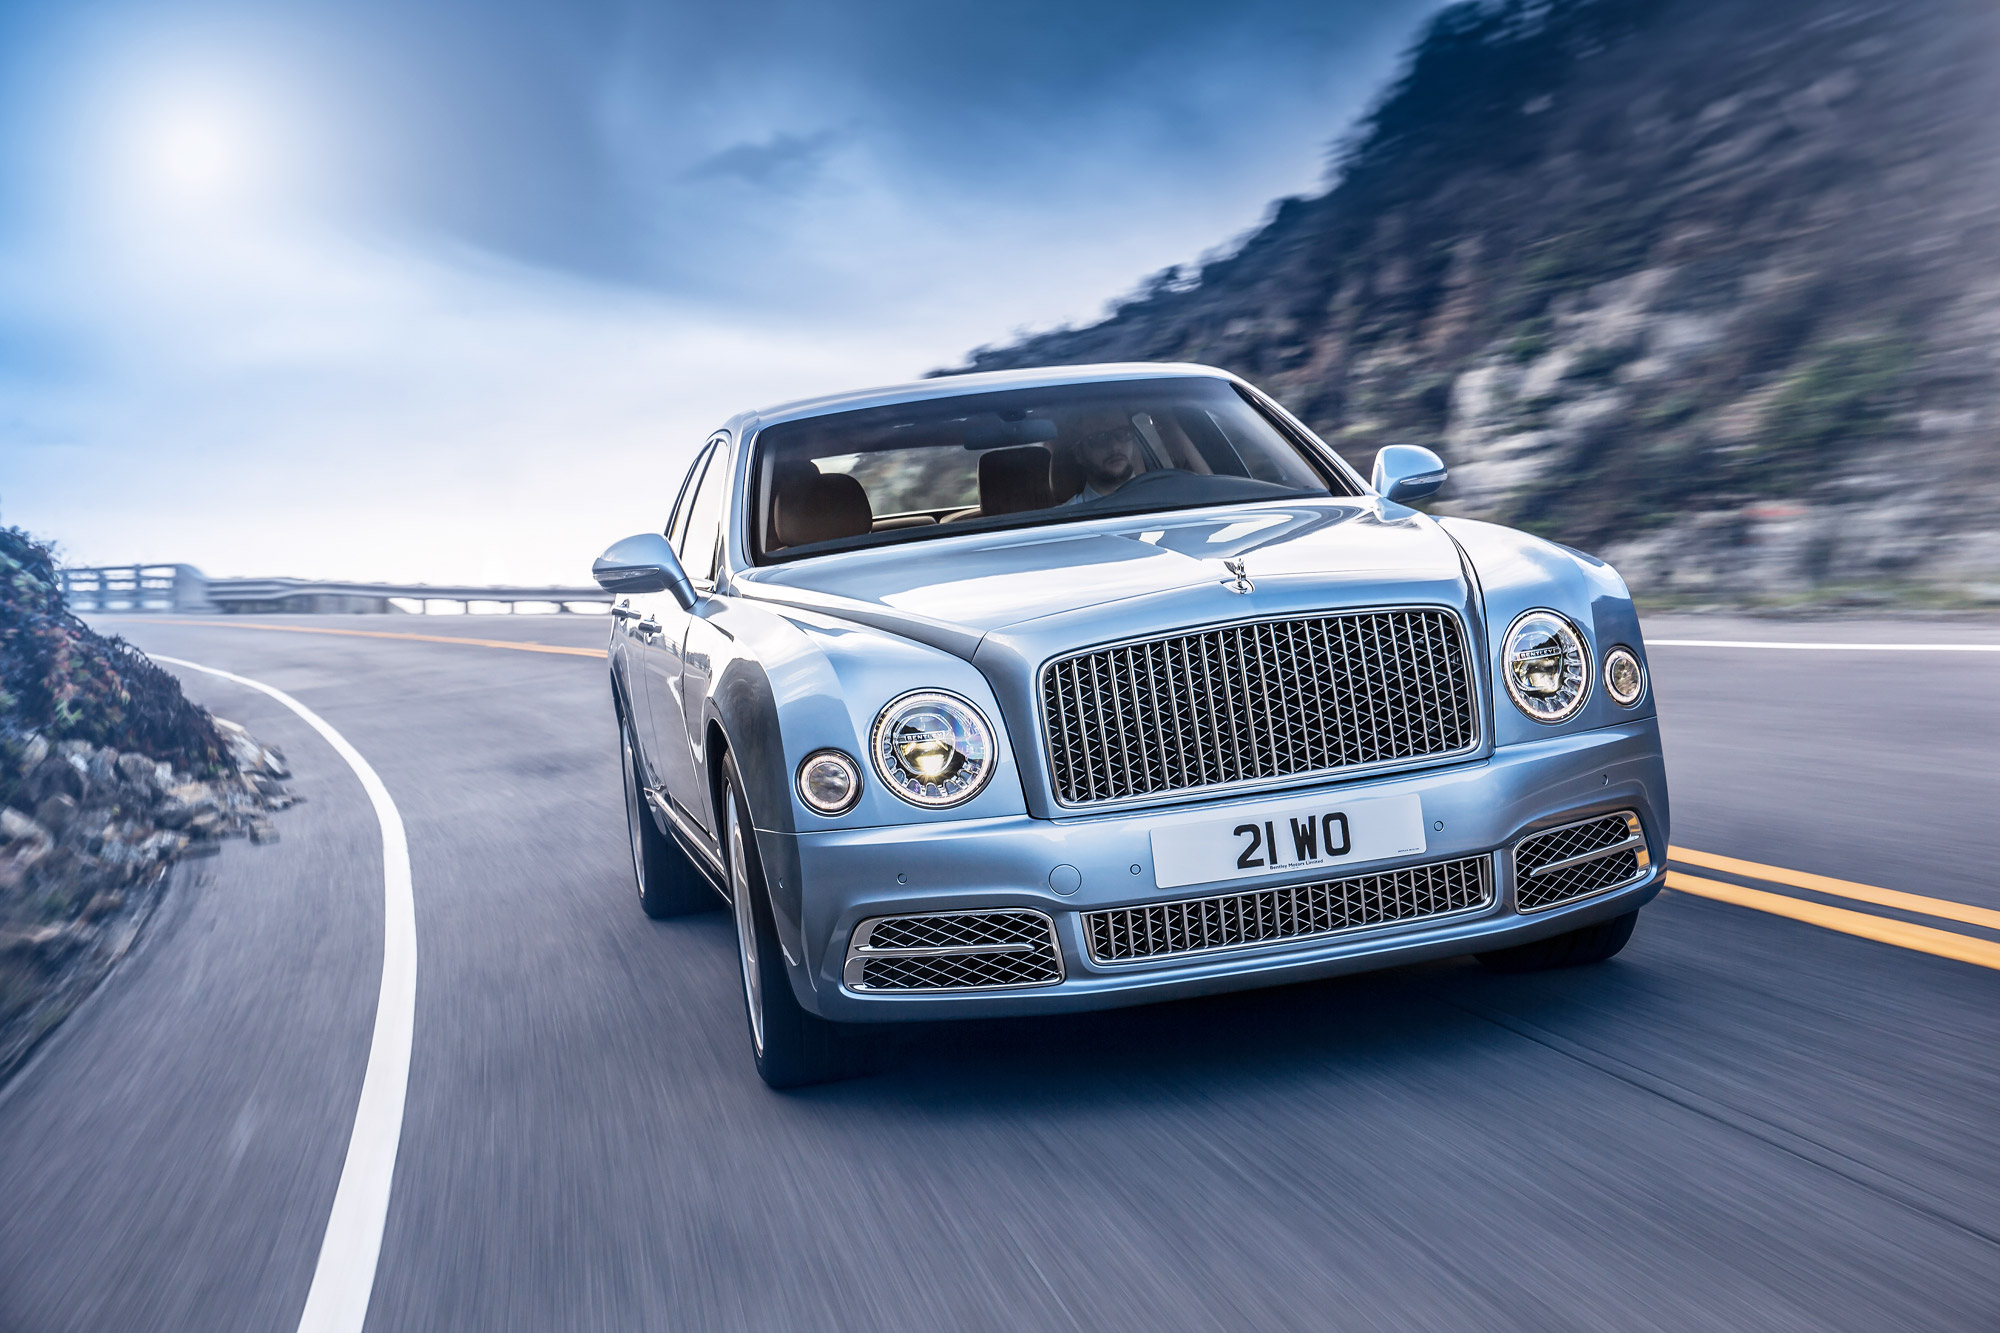 All You Need To Know About The New Bentley Mulsanne